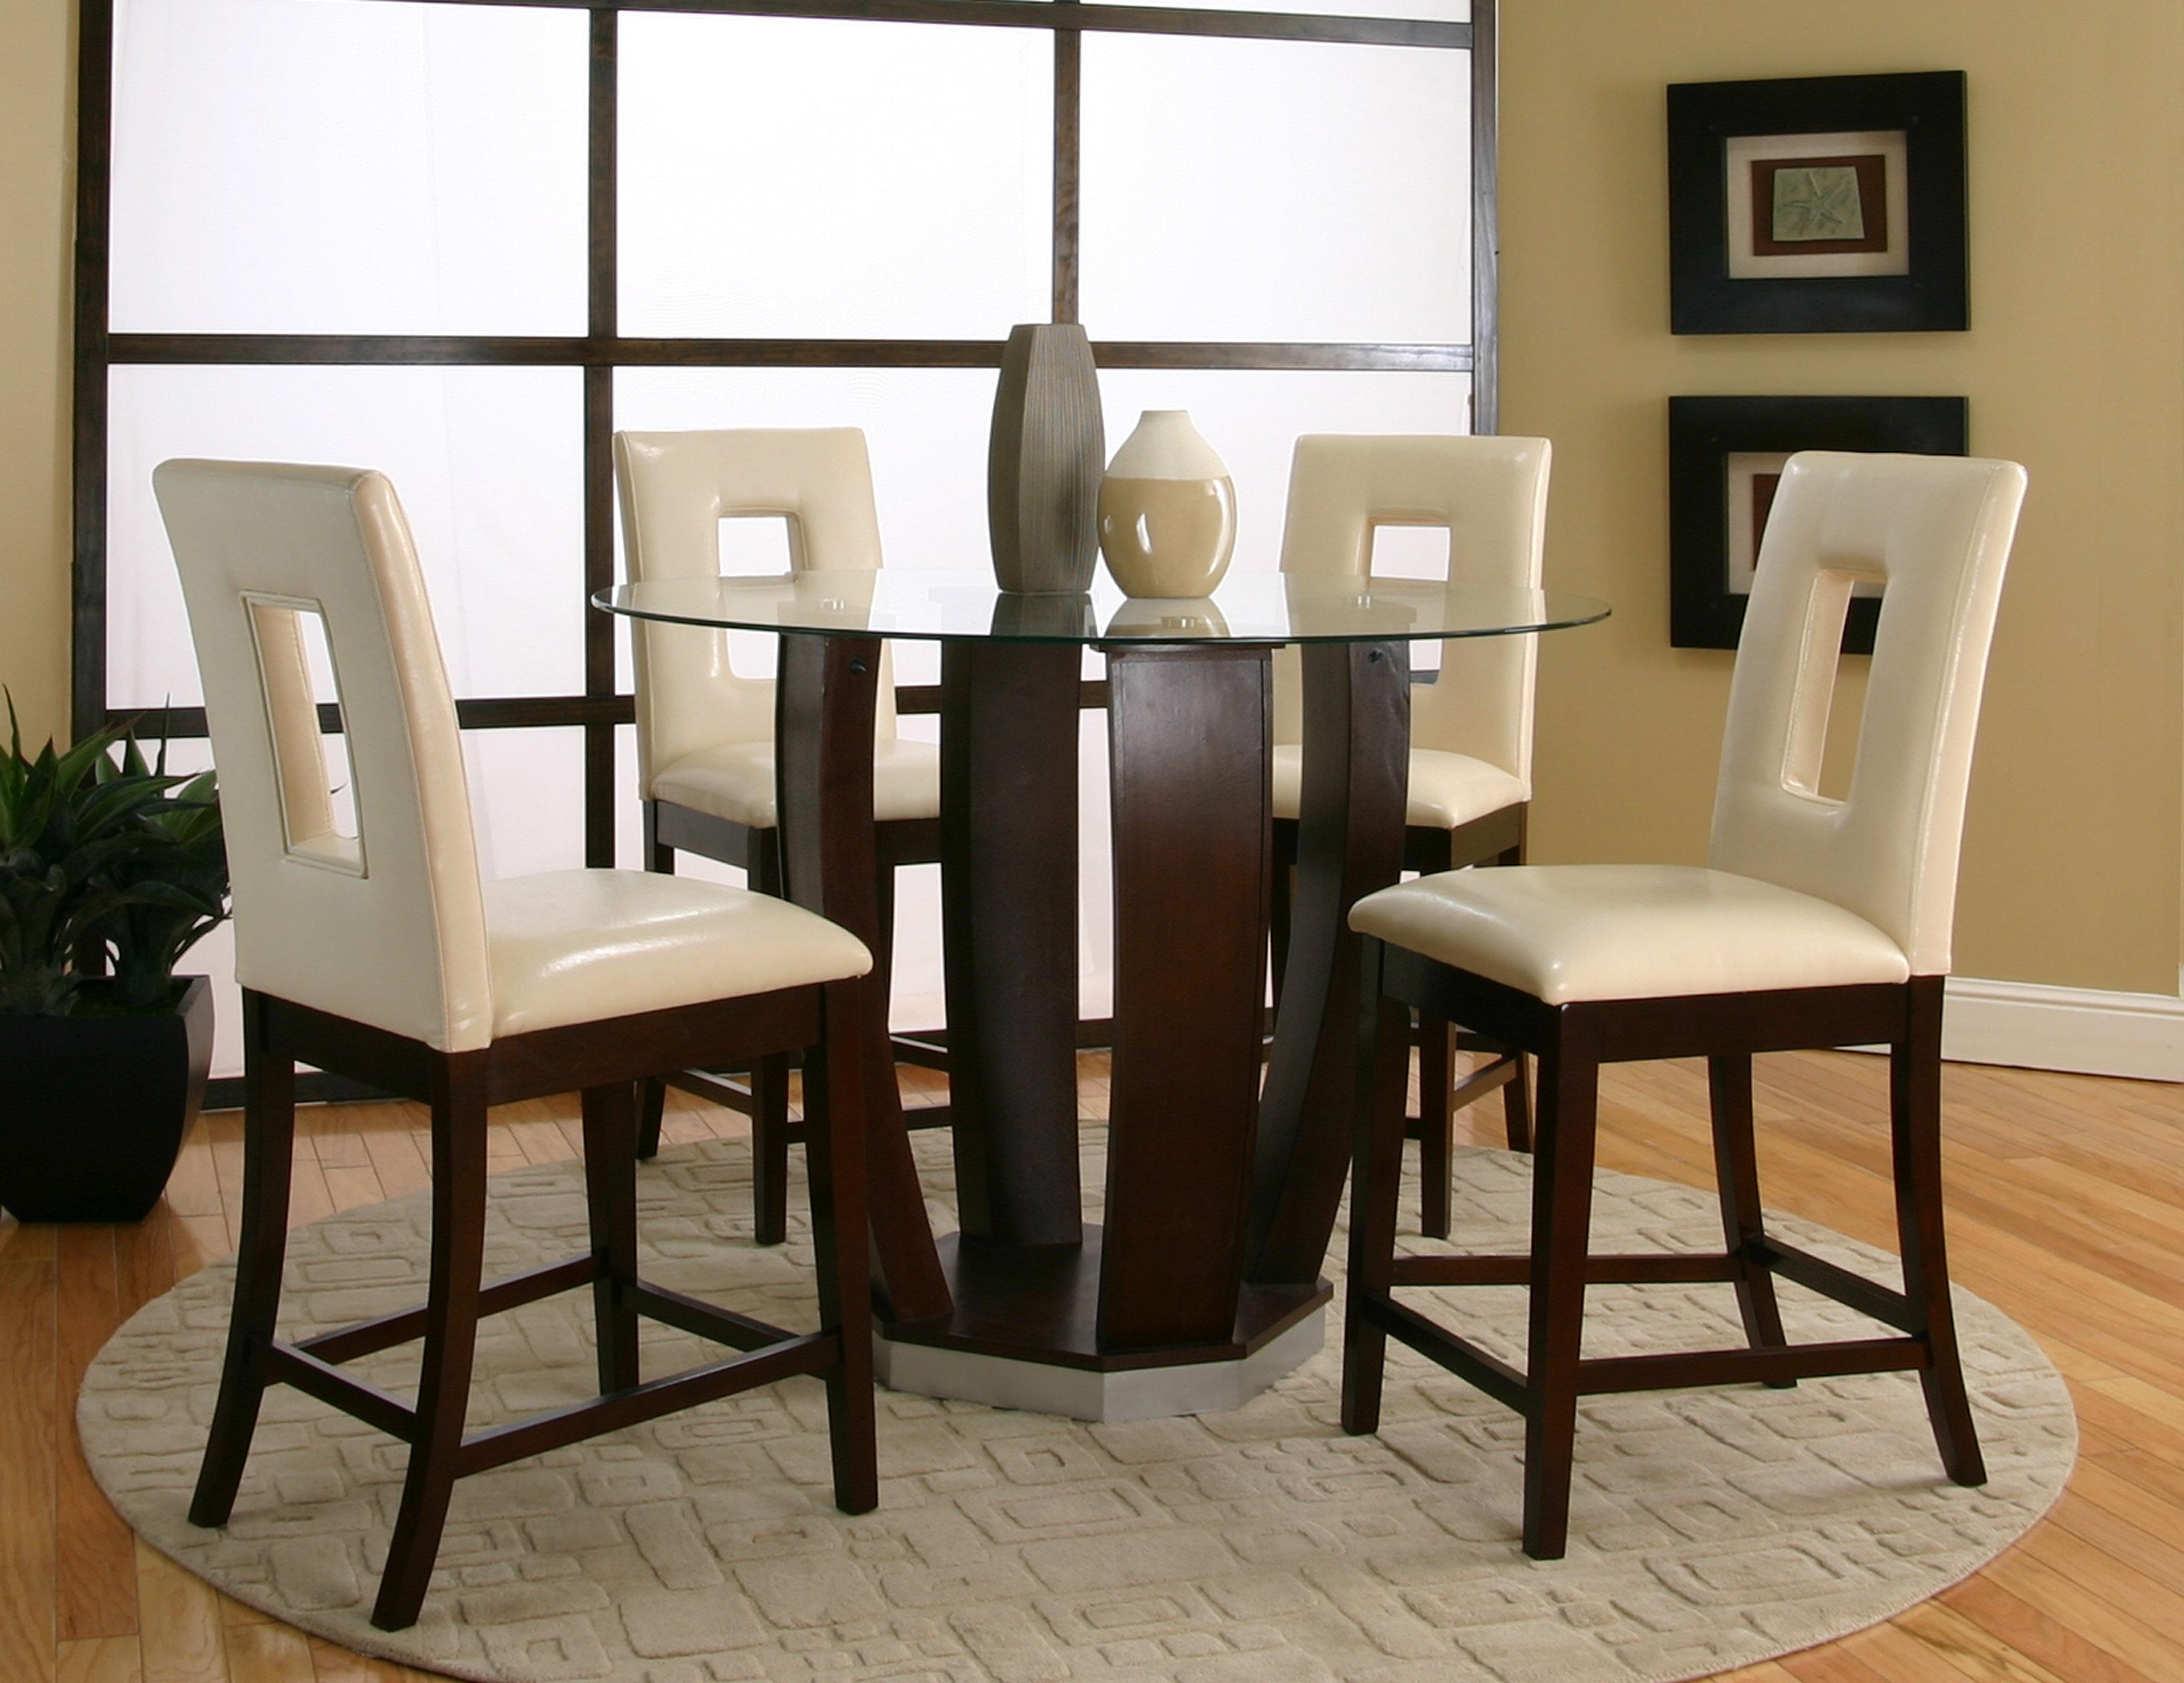 Tempered Glass Top Pub Table Set : pub dining room table sets - pezcame.com